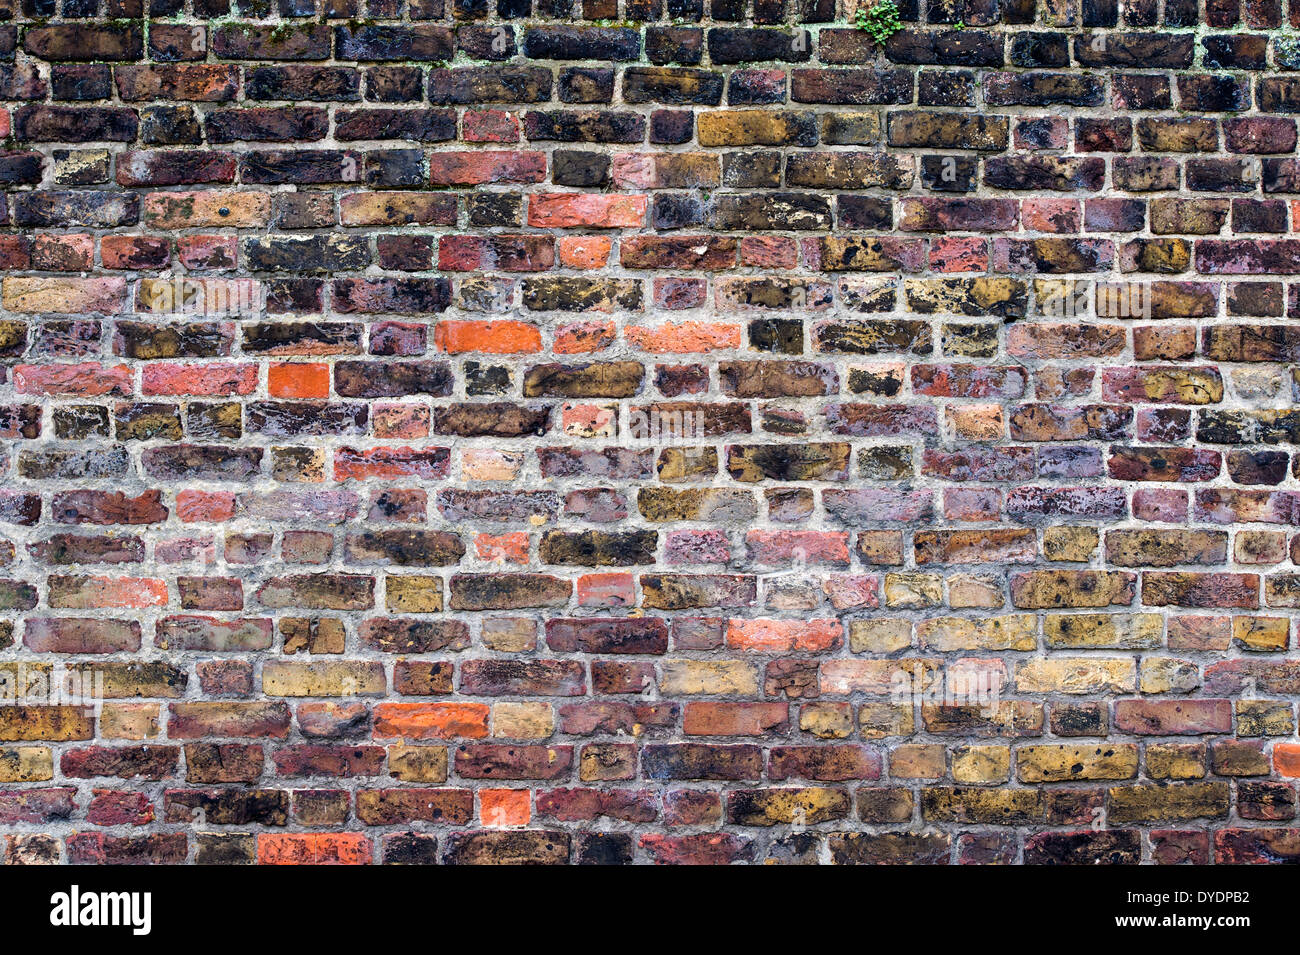 Colourful textured London Brick Wall - Stock Image